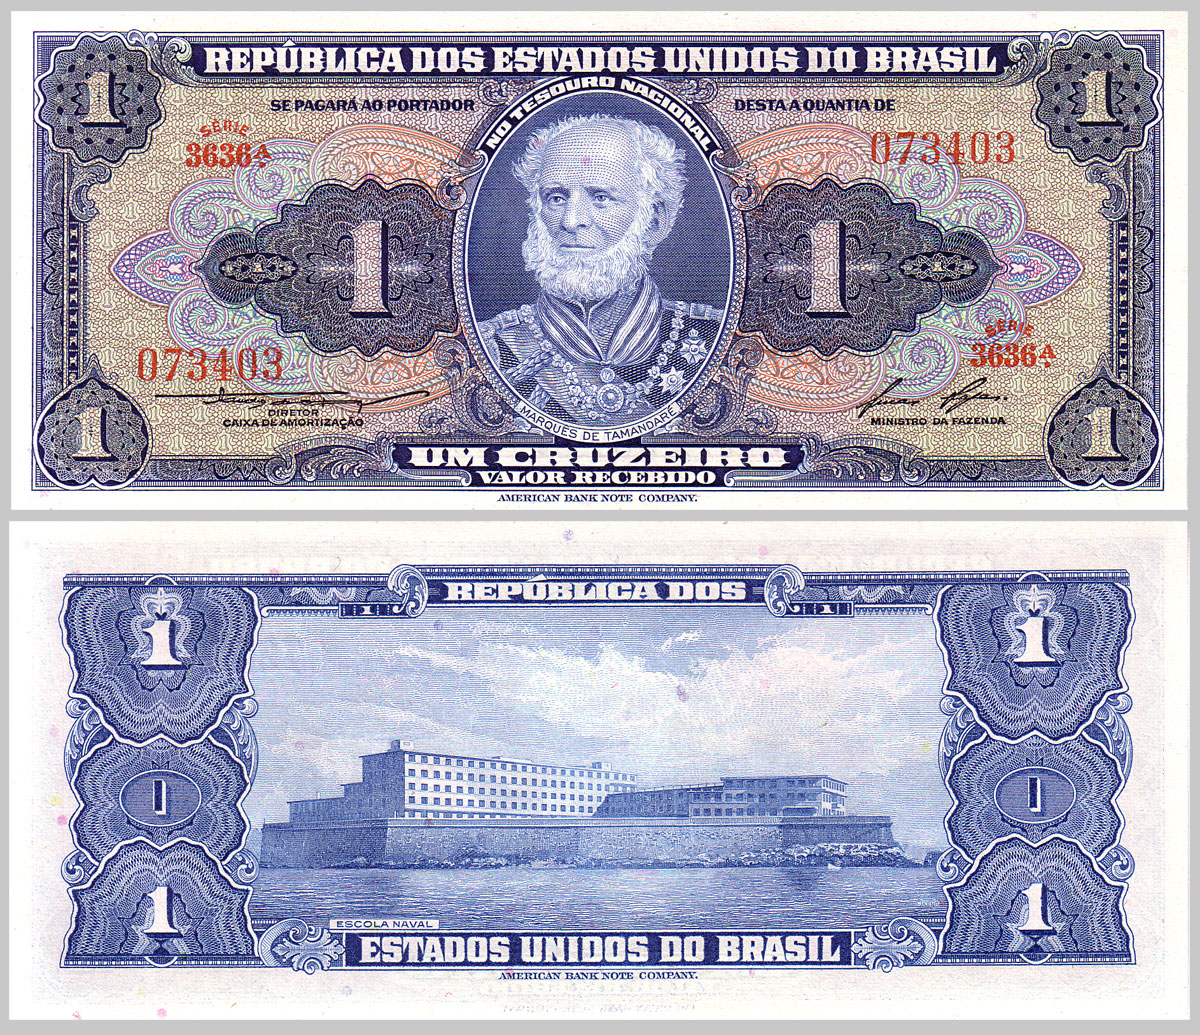 Brazil Paper Money http://www.panix.com/~clay/currency/Brasil.html